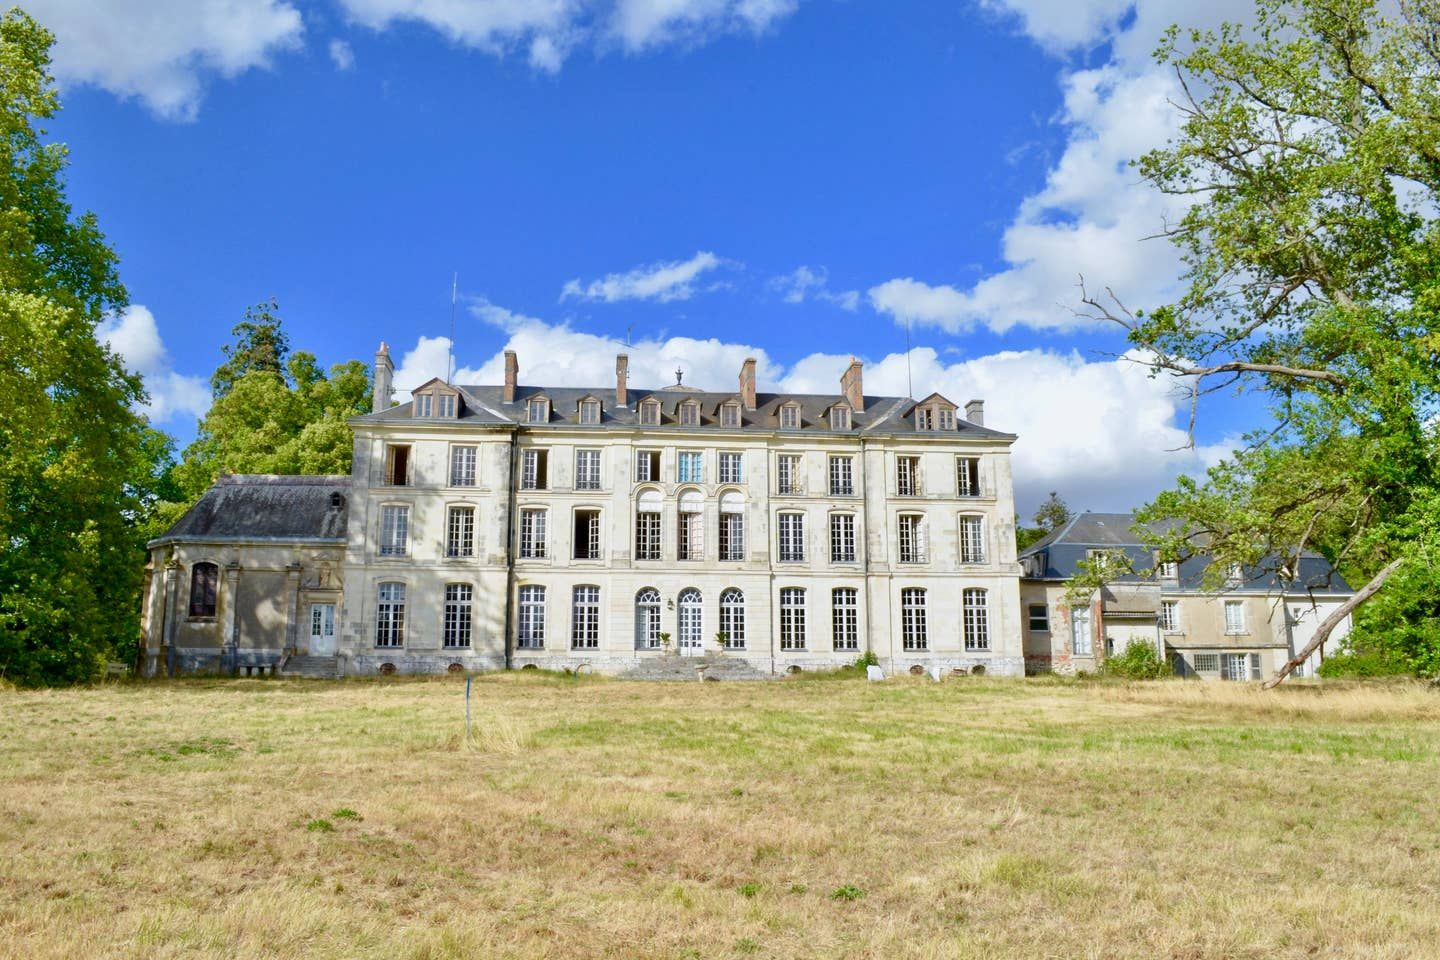 You can stay in an abandoned French chateau...while it gets renovated